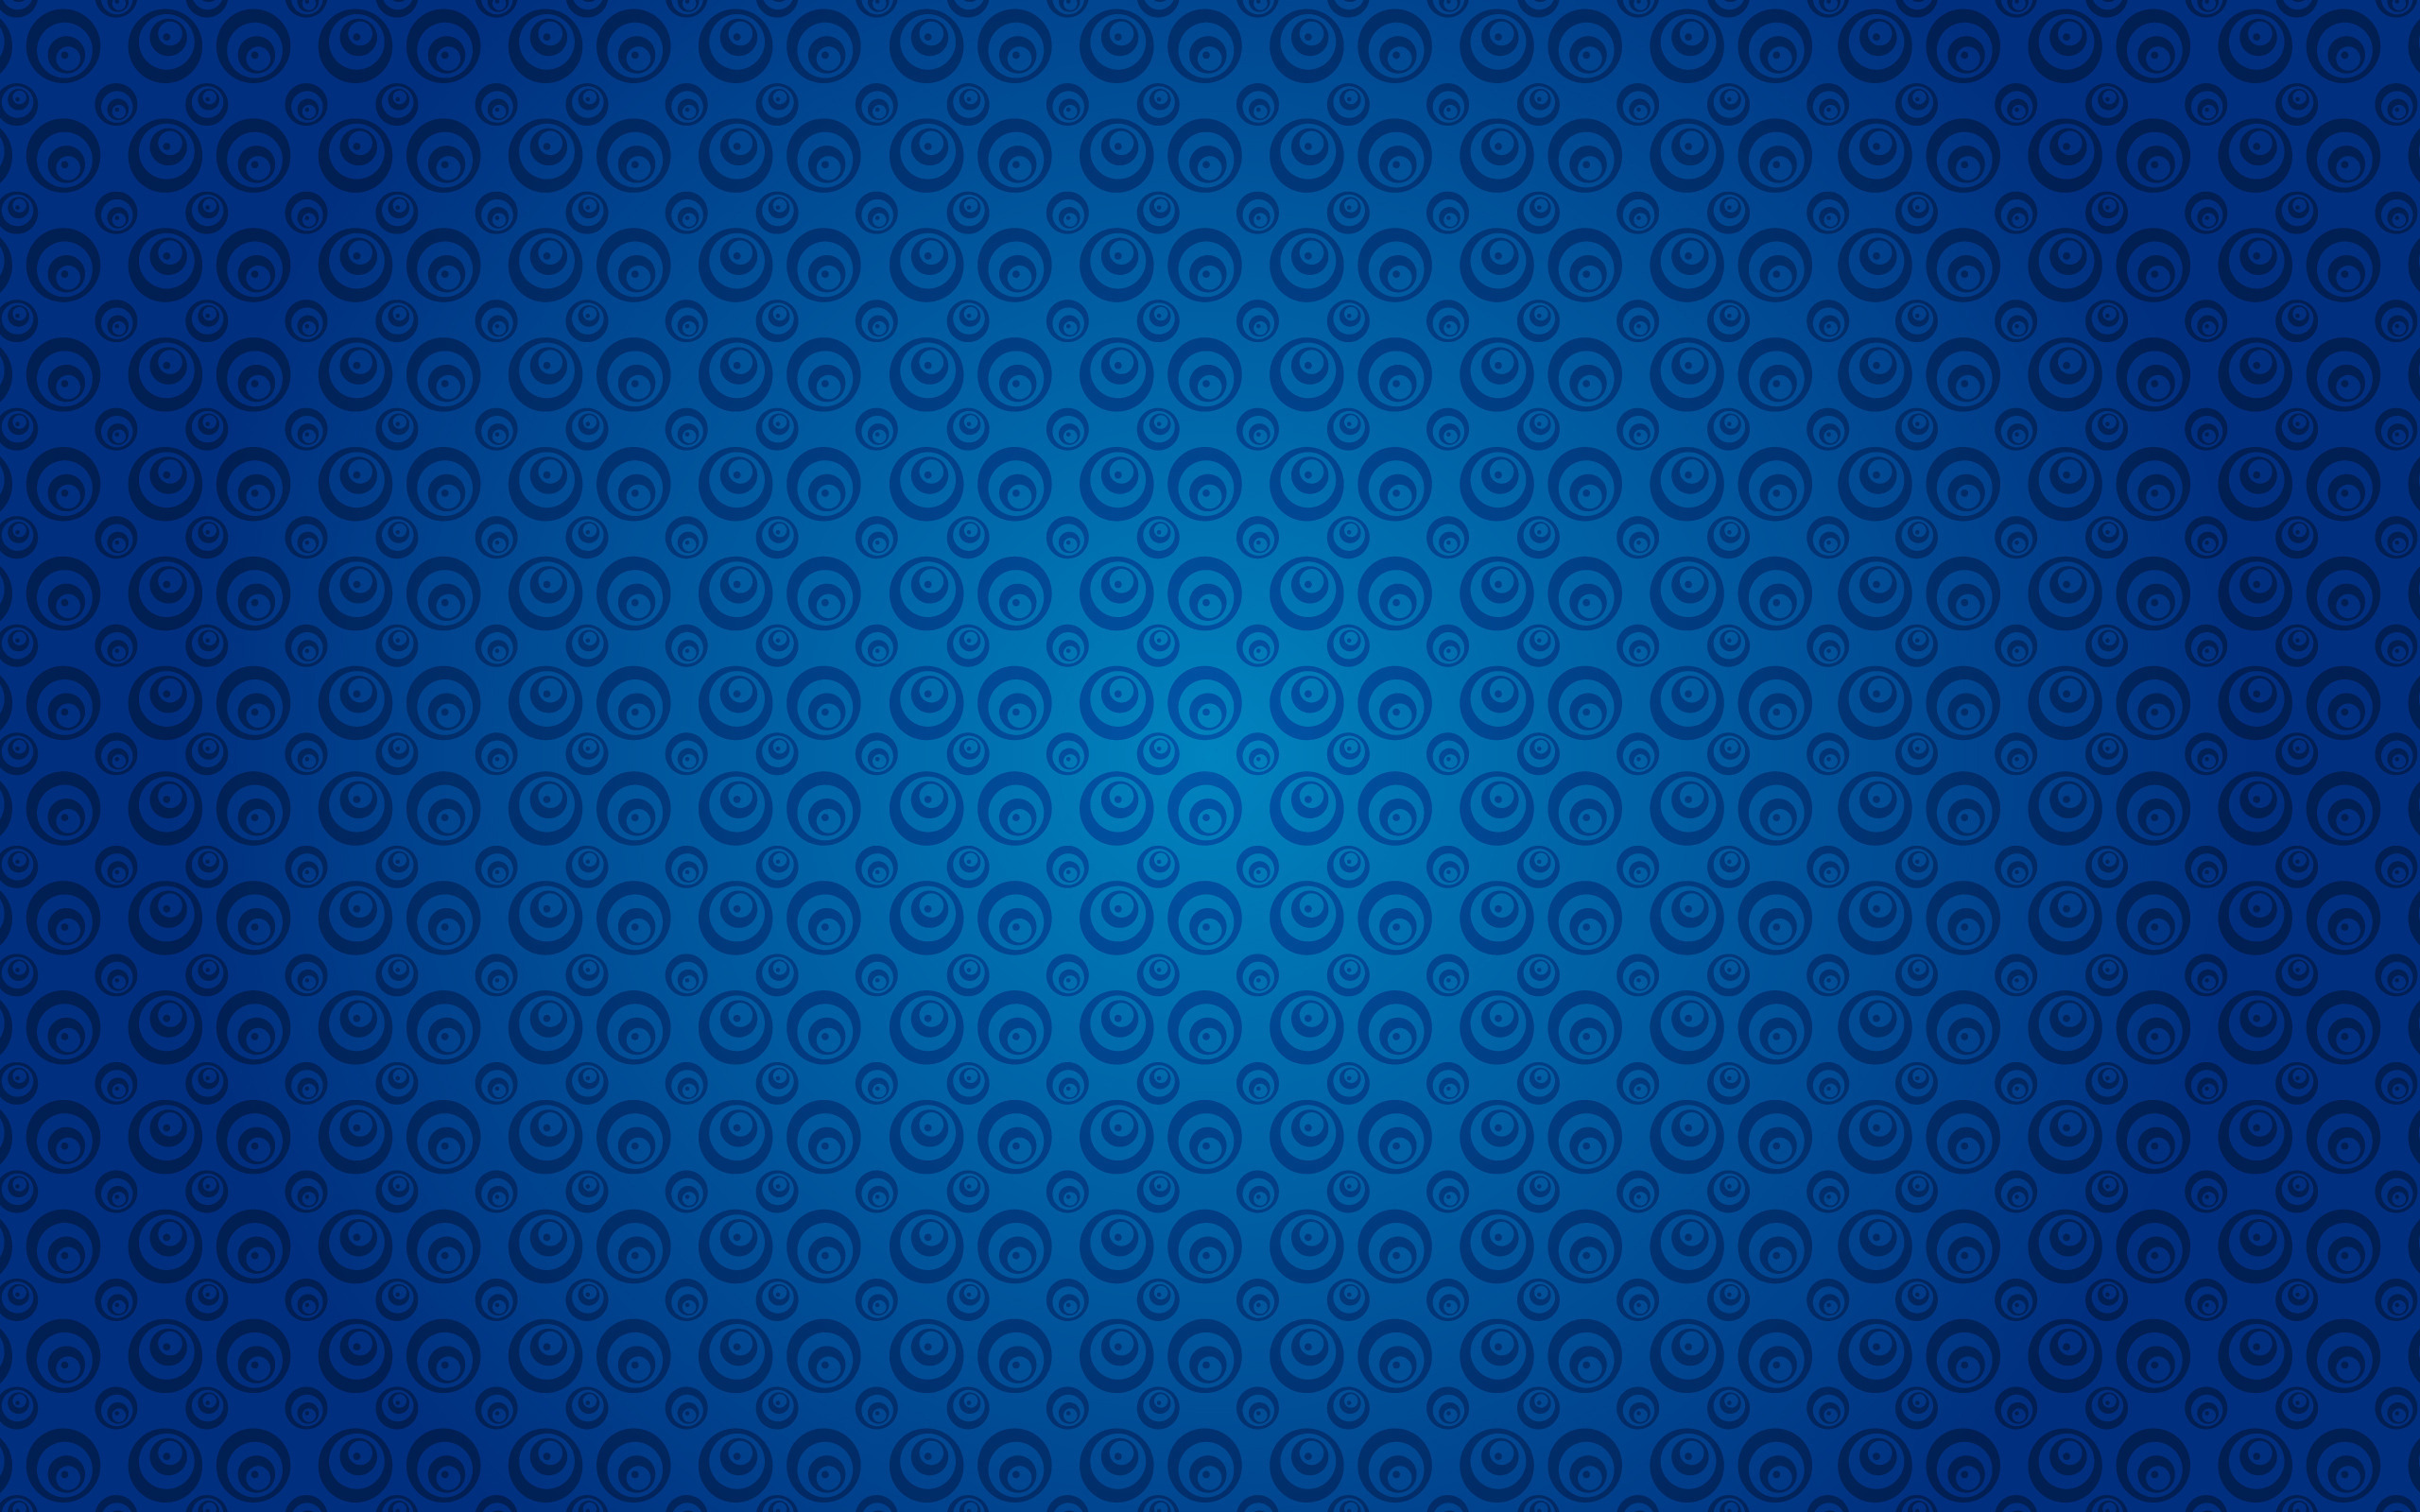 Blue background with circles wallpapers and images   wallpapers 2560x1600